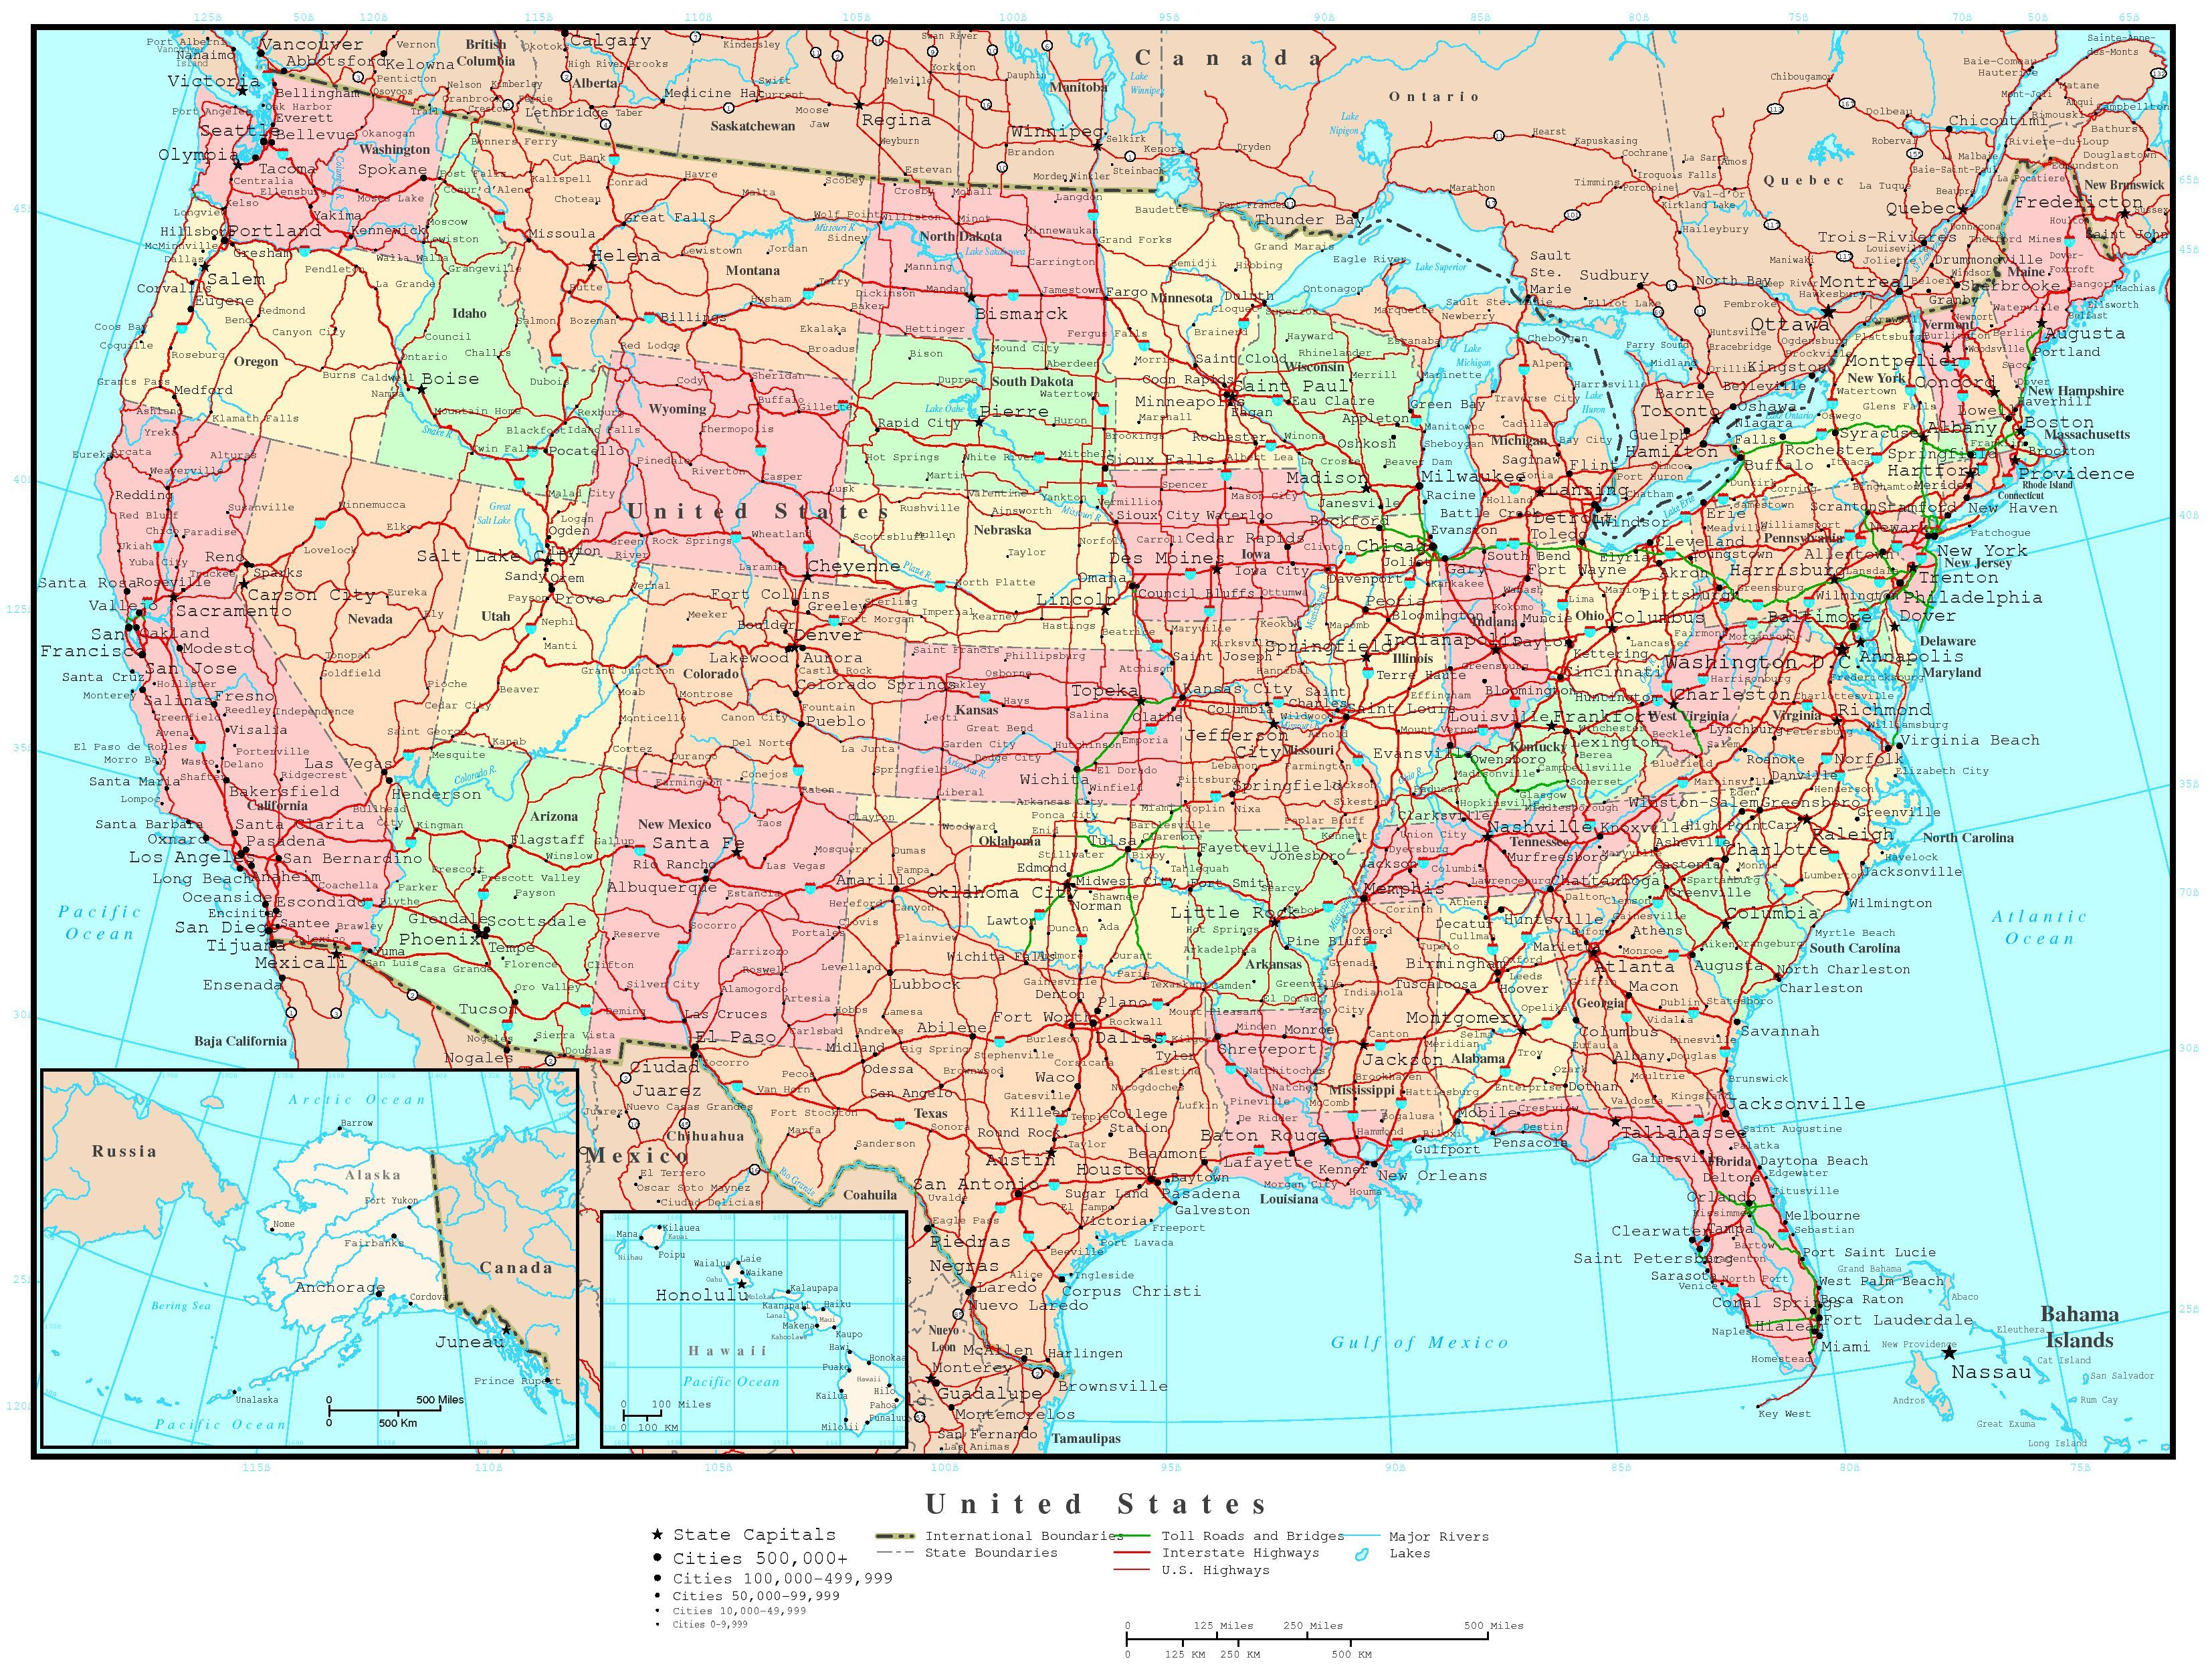 Reference Map Showing Major Highways And Cities And Roads Of - Us map with cities